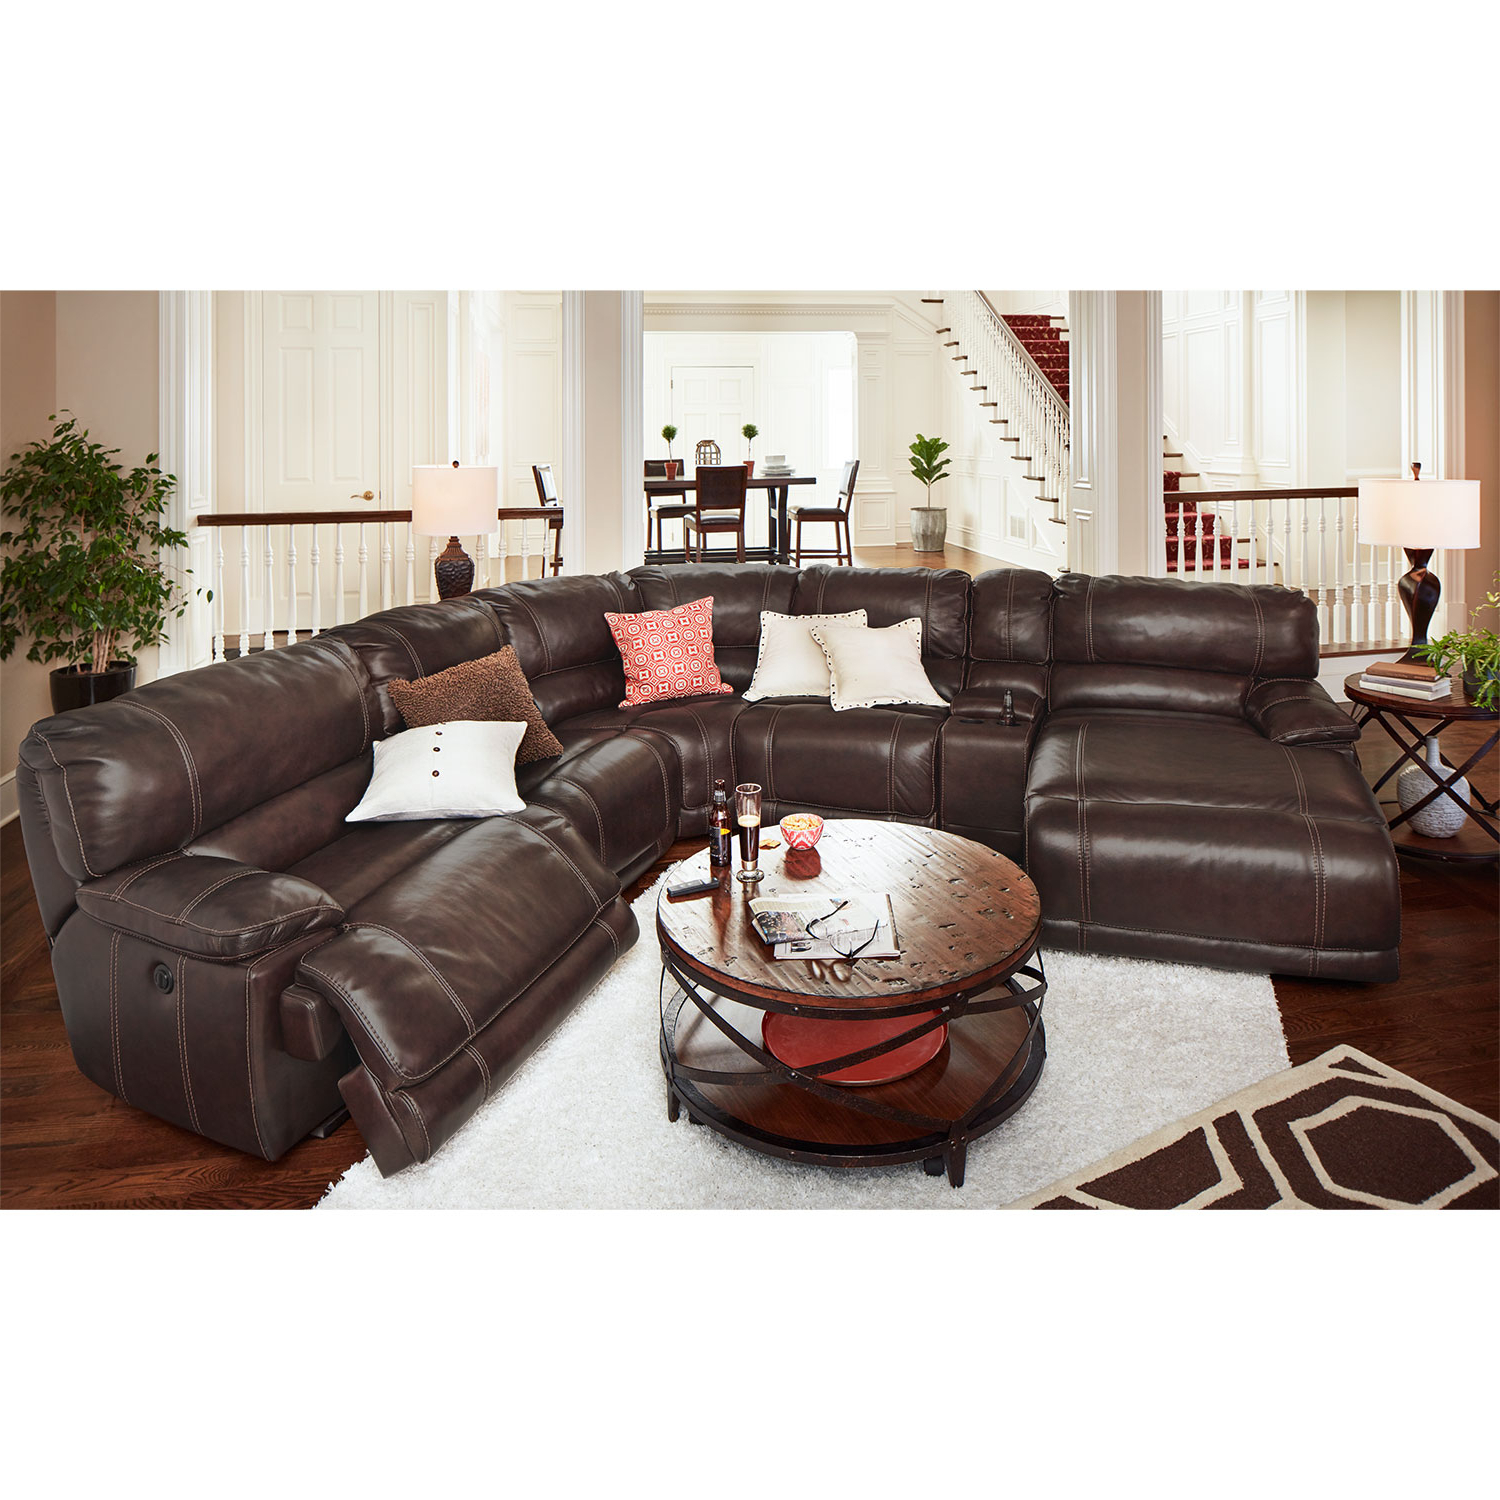 Trendy Denali Charcoal Grey 6 Piece Reclining Sectionals With 2 Power Headrests Throughout Power Sectional – Tidex (View 17 of 20)